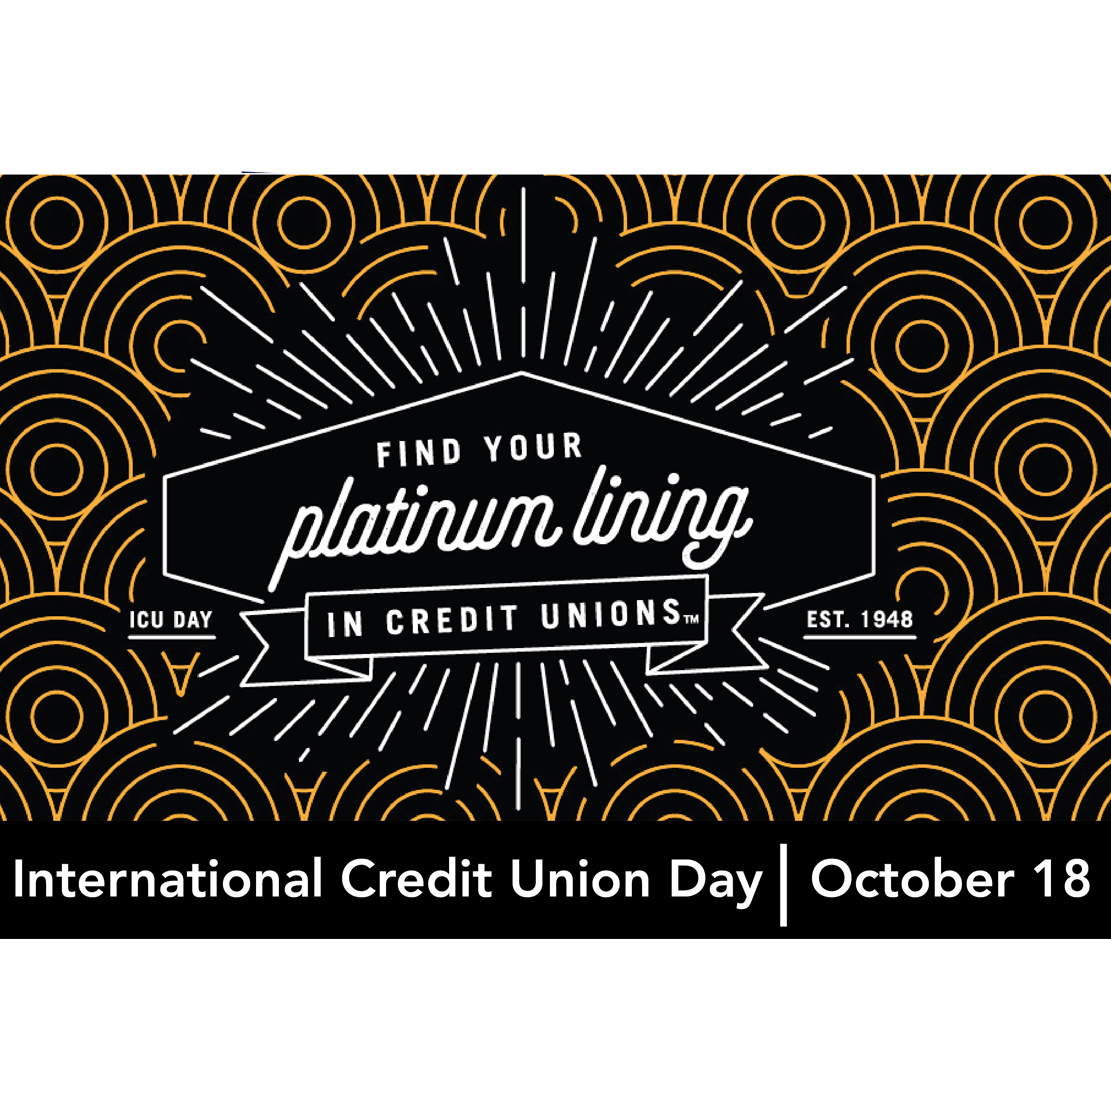 OnPoint is celebrating International Credit Union Day on October 18